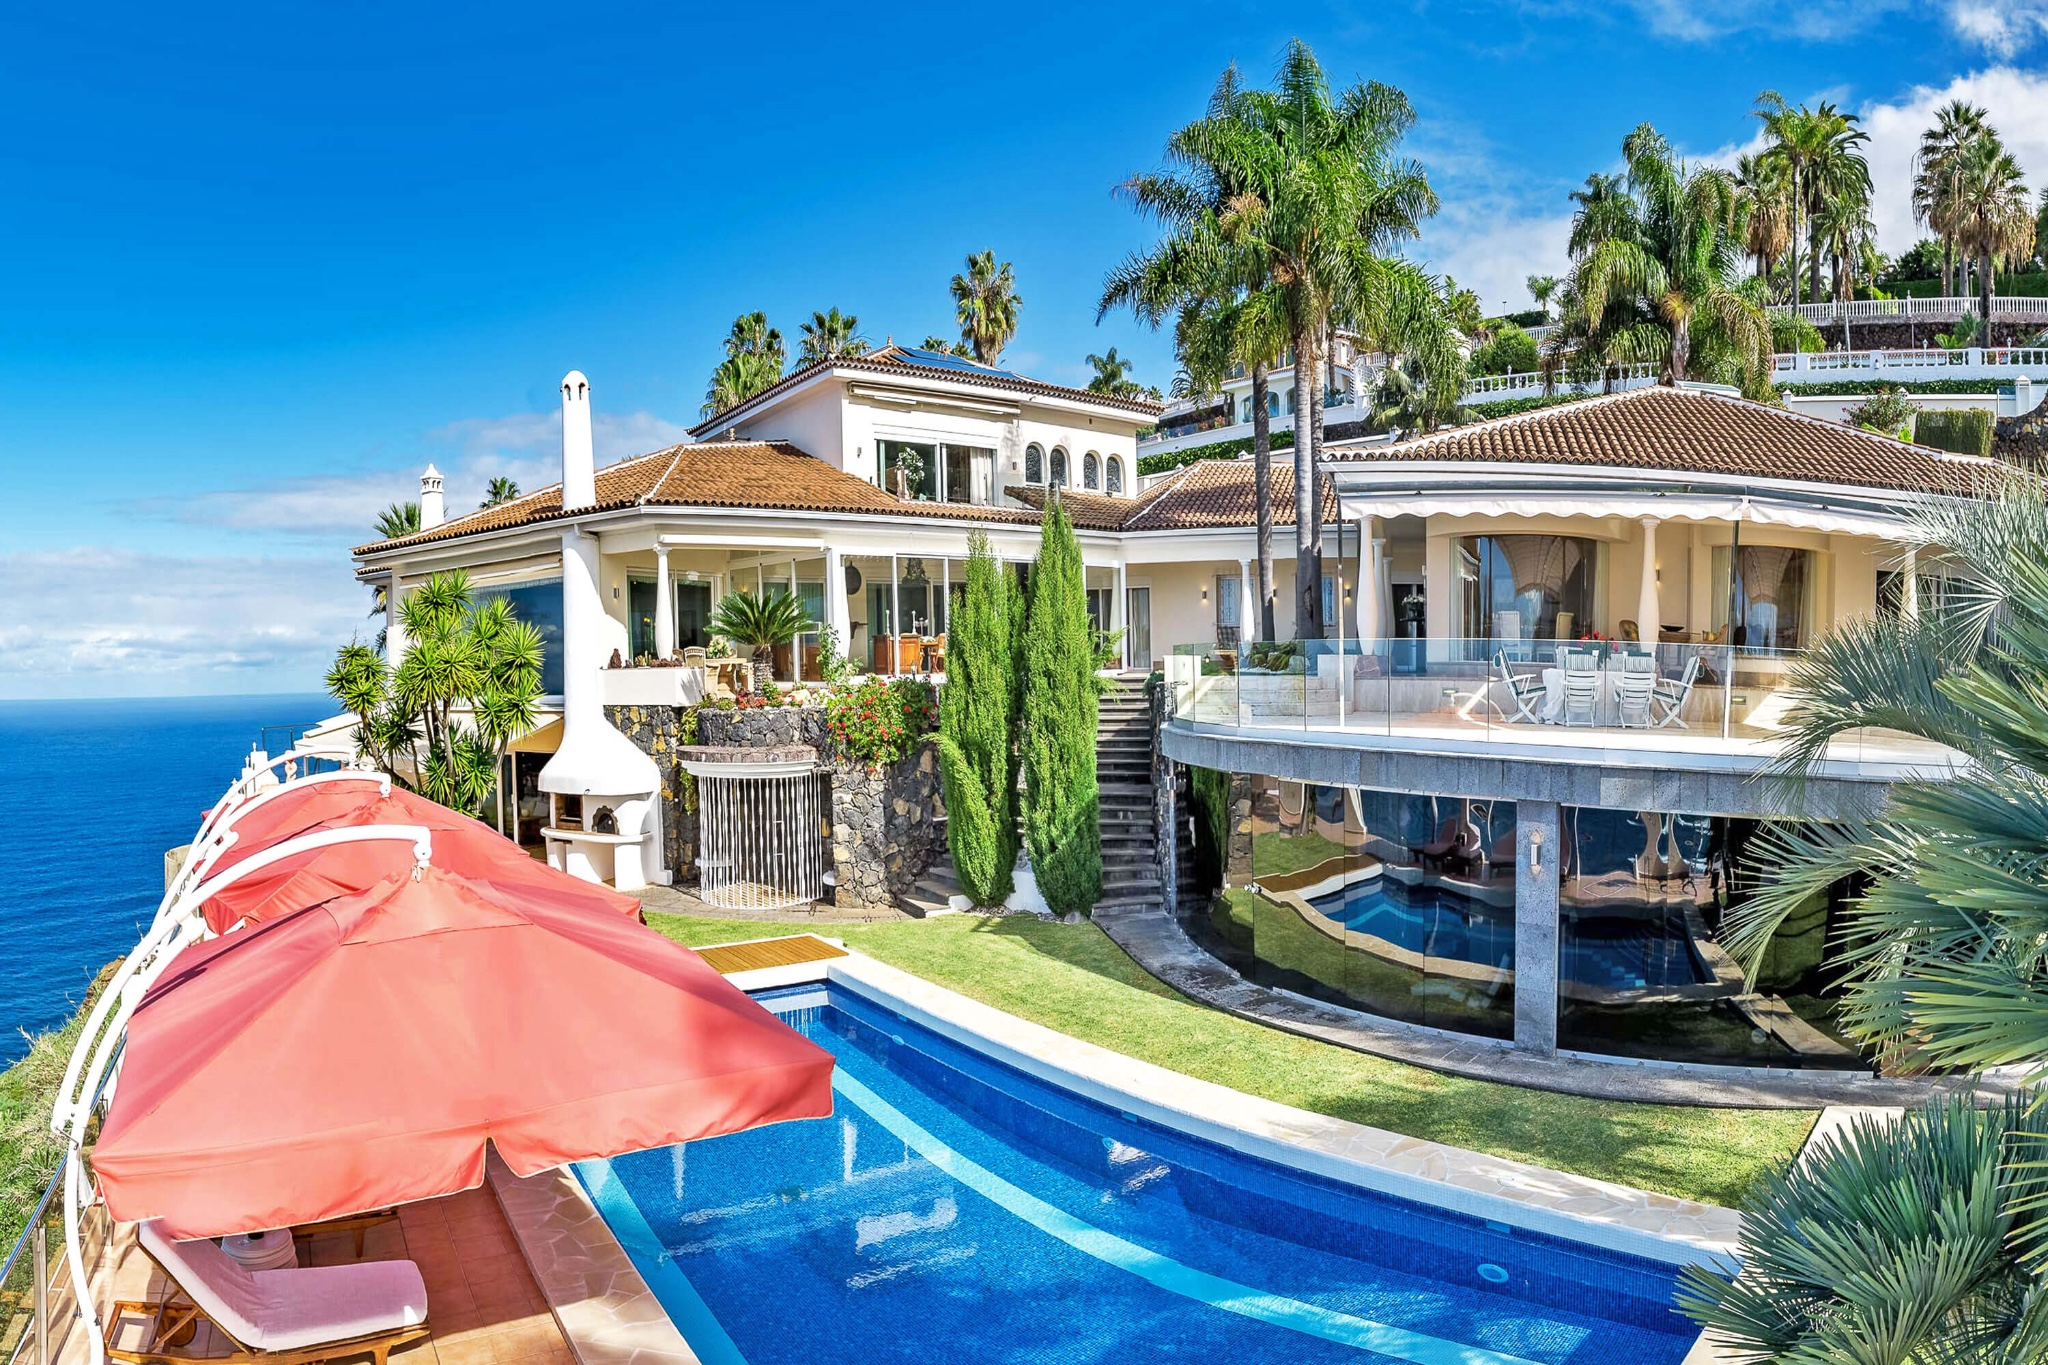 Charming luxury villa with private pool and private beach in the garden, comfortable interior equipment and spectacular views of the Atlantic in the west of Tenerife.